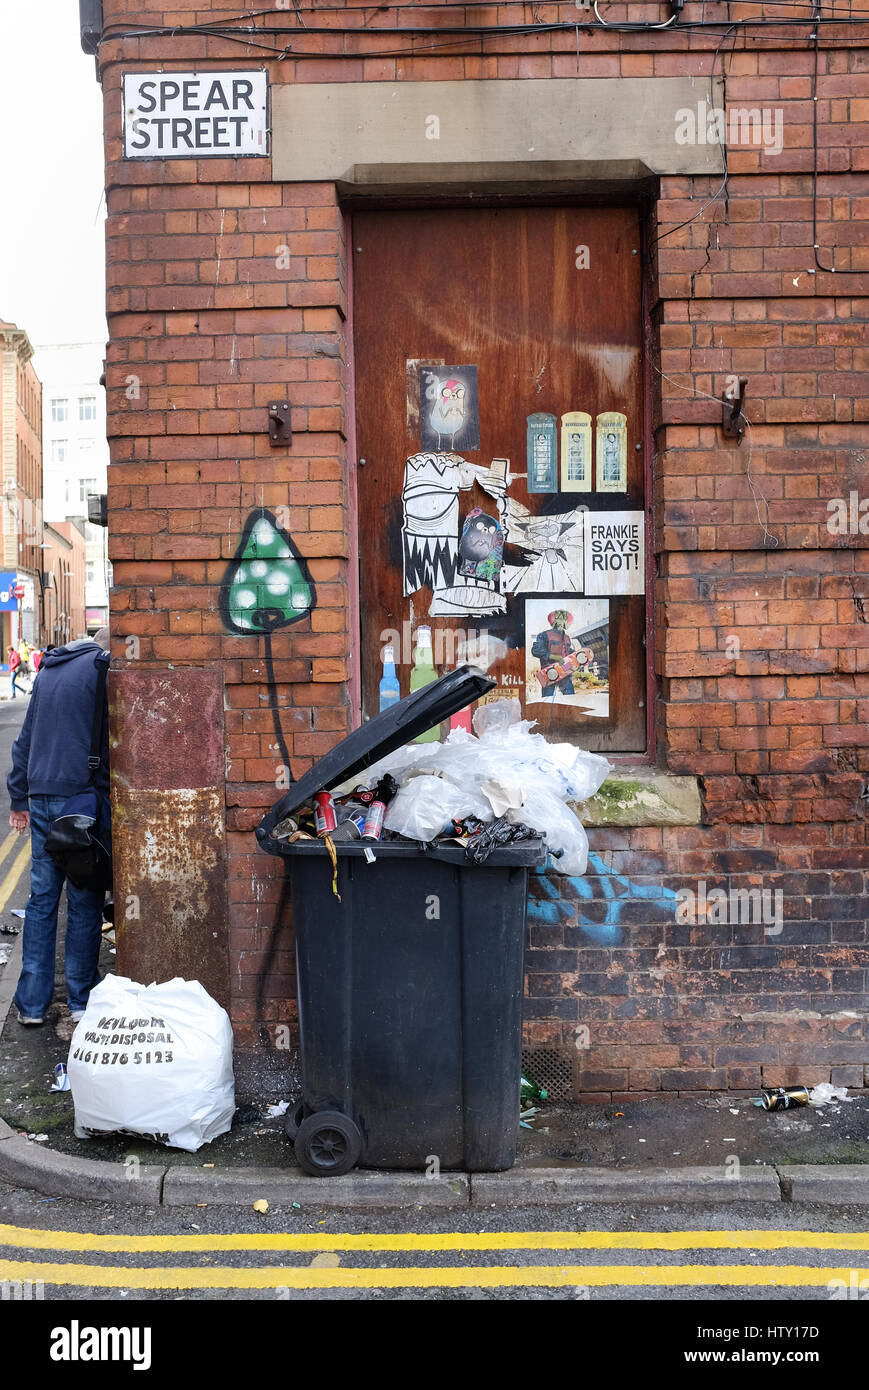 Rubbish piles up in Spear Street in Manchester city centre - Stock Image